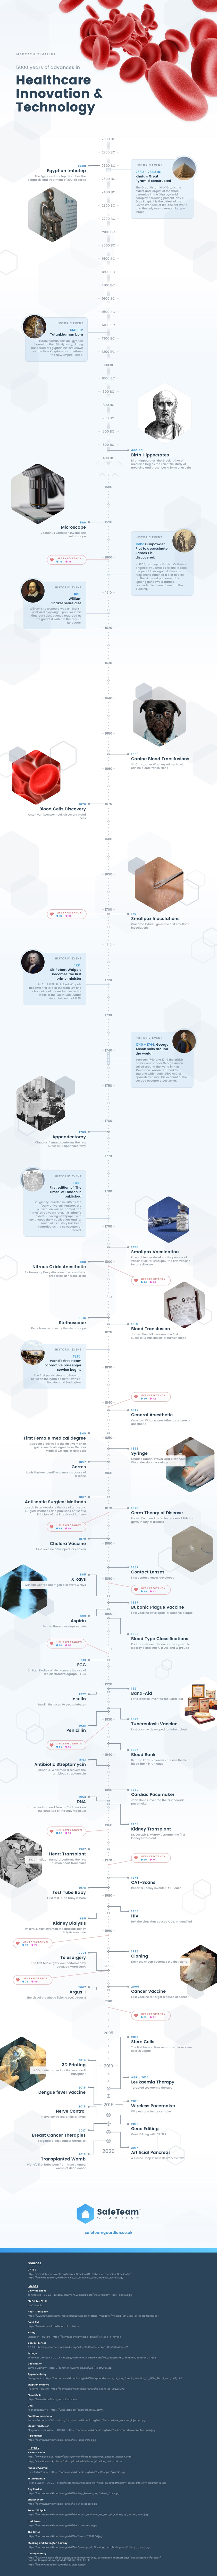 MedTech Timeline: 5,000 Years of Advances in Healthcare Innovation & Technology infographic